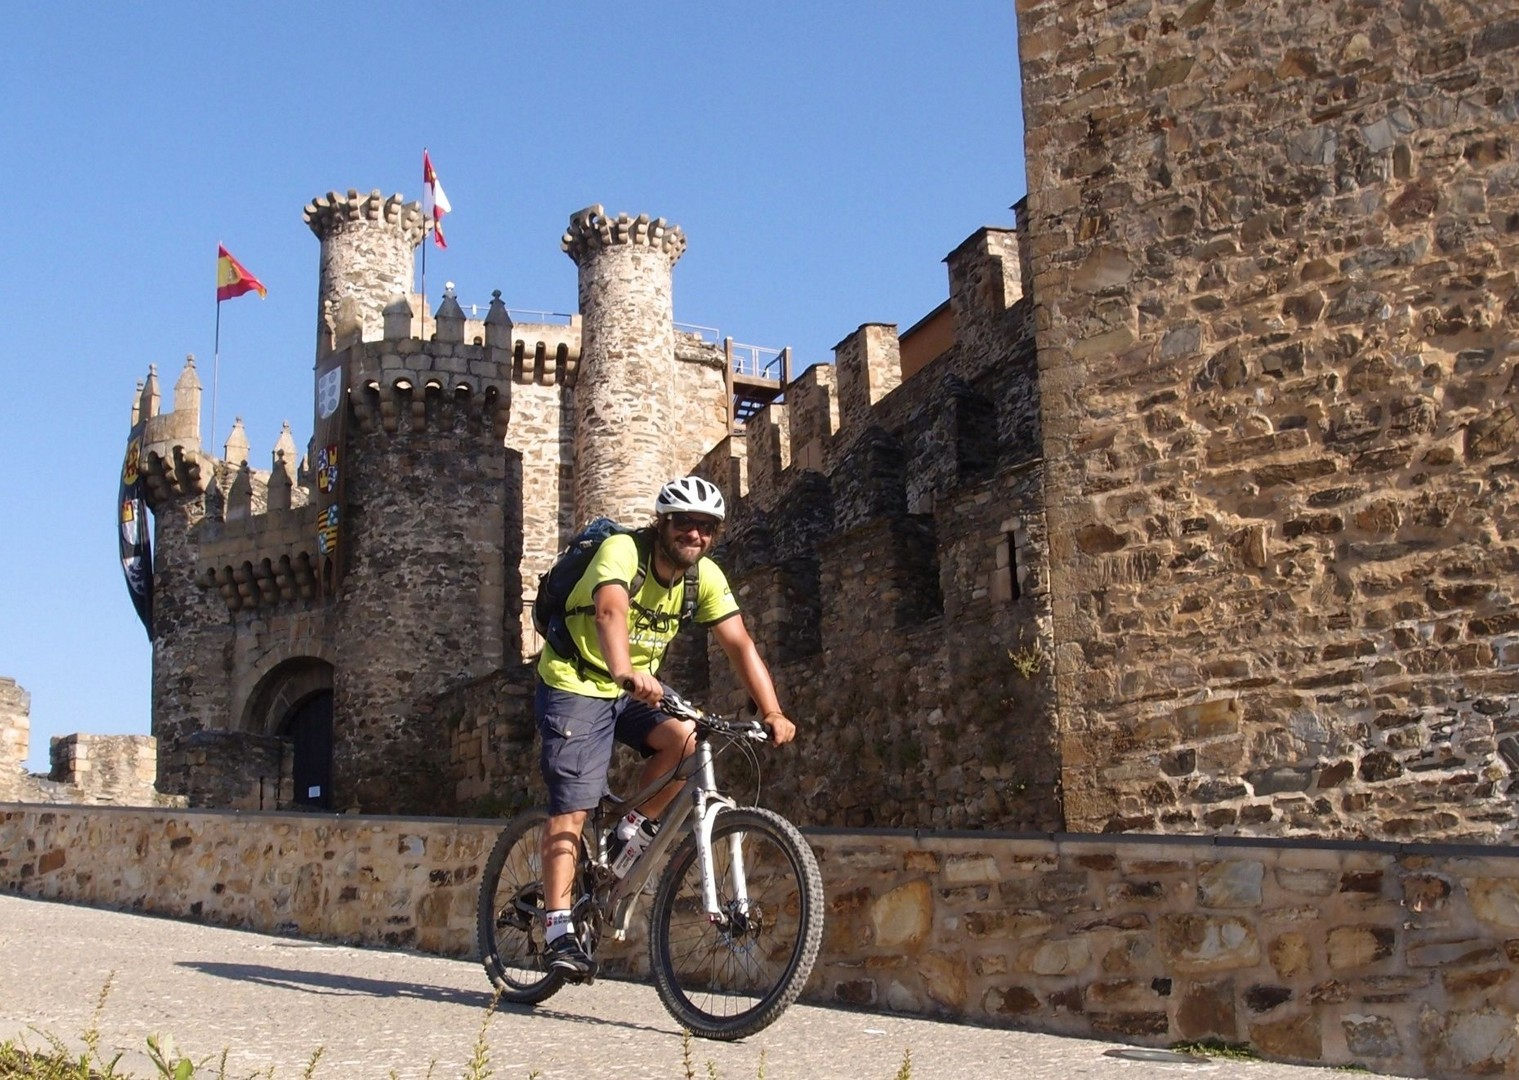 Caminodesantiago15.jpg - Northern Spain - Camino de Santiago - Guided Leisure Cycling Holiday - Leisure Cycling